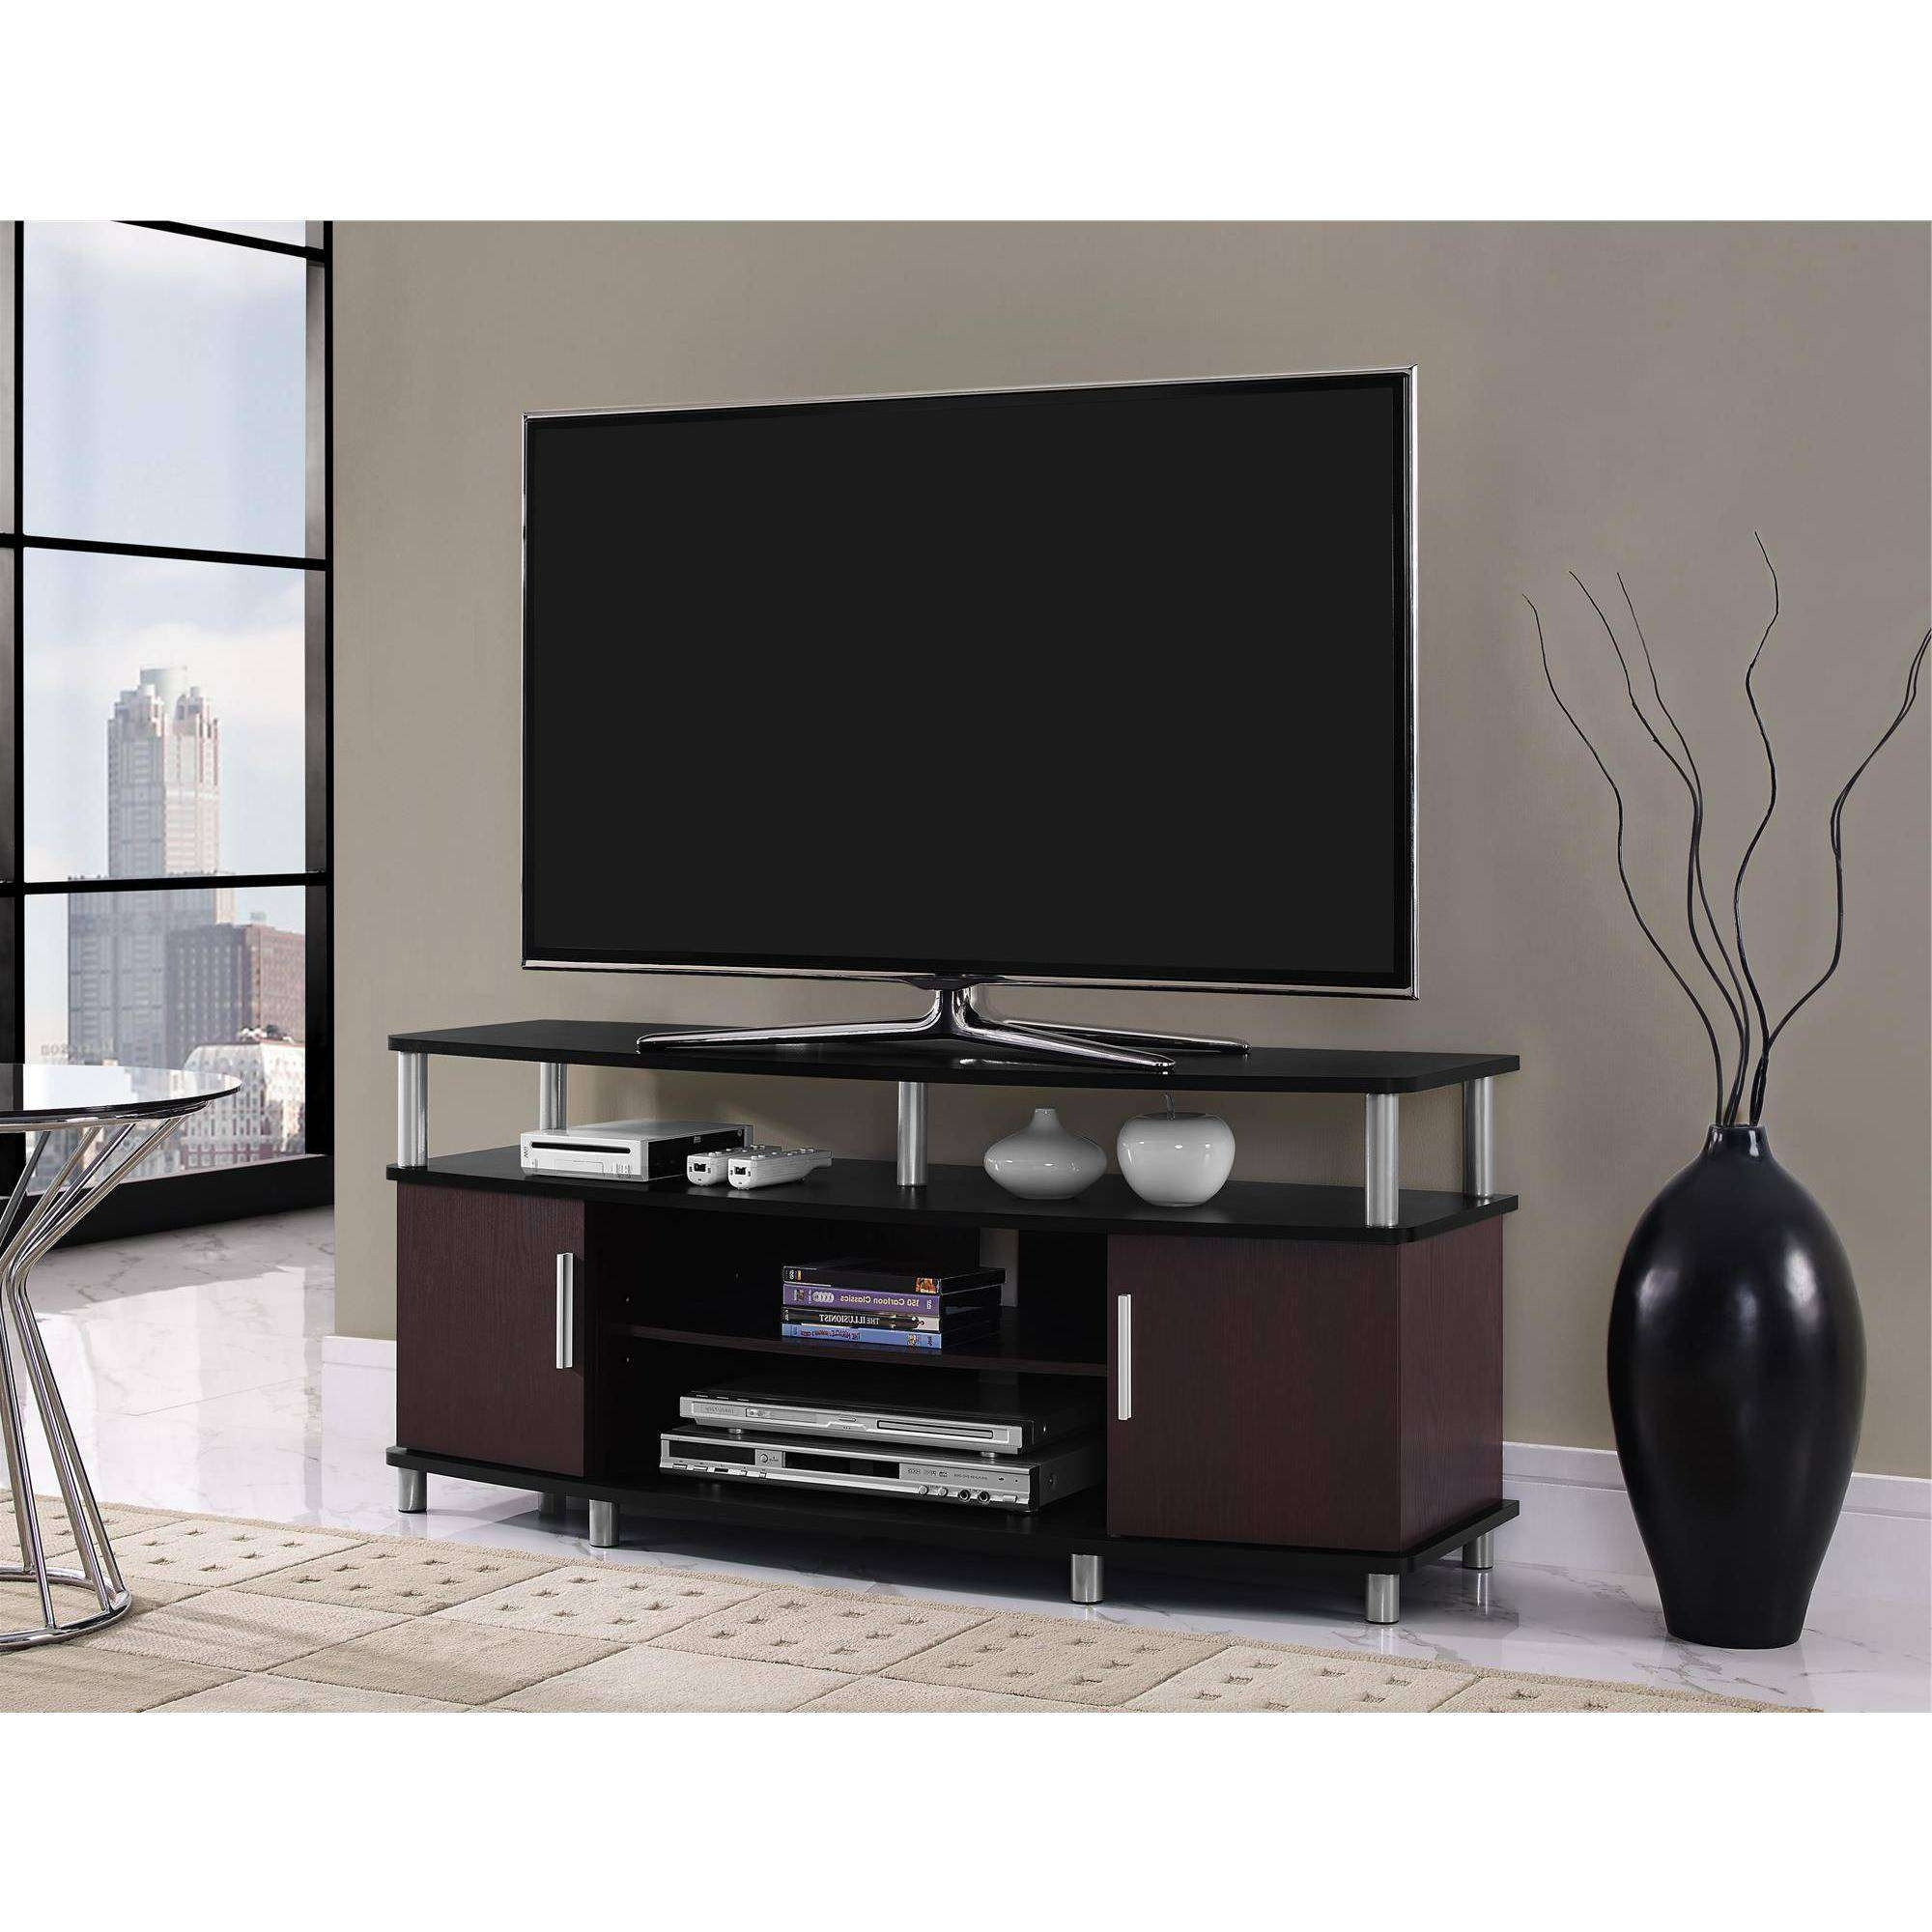 Tv Stands & Entertainment Centers – Walmart Regarding Wooden Tv Stands And Cabinets (View 10 of 15)